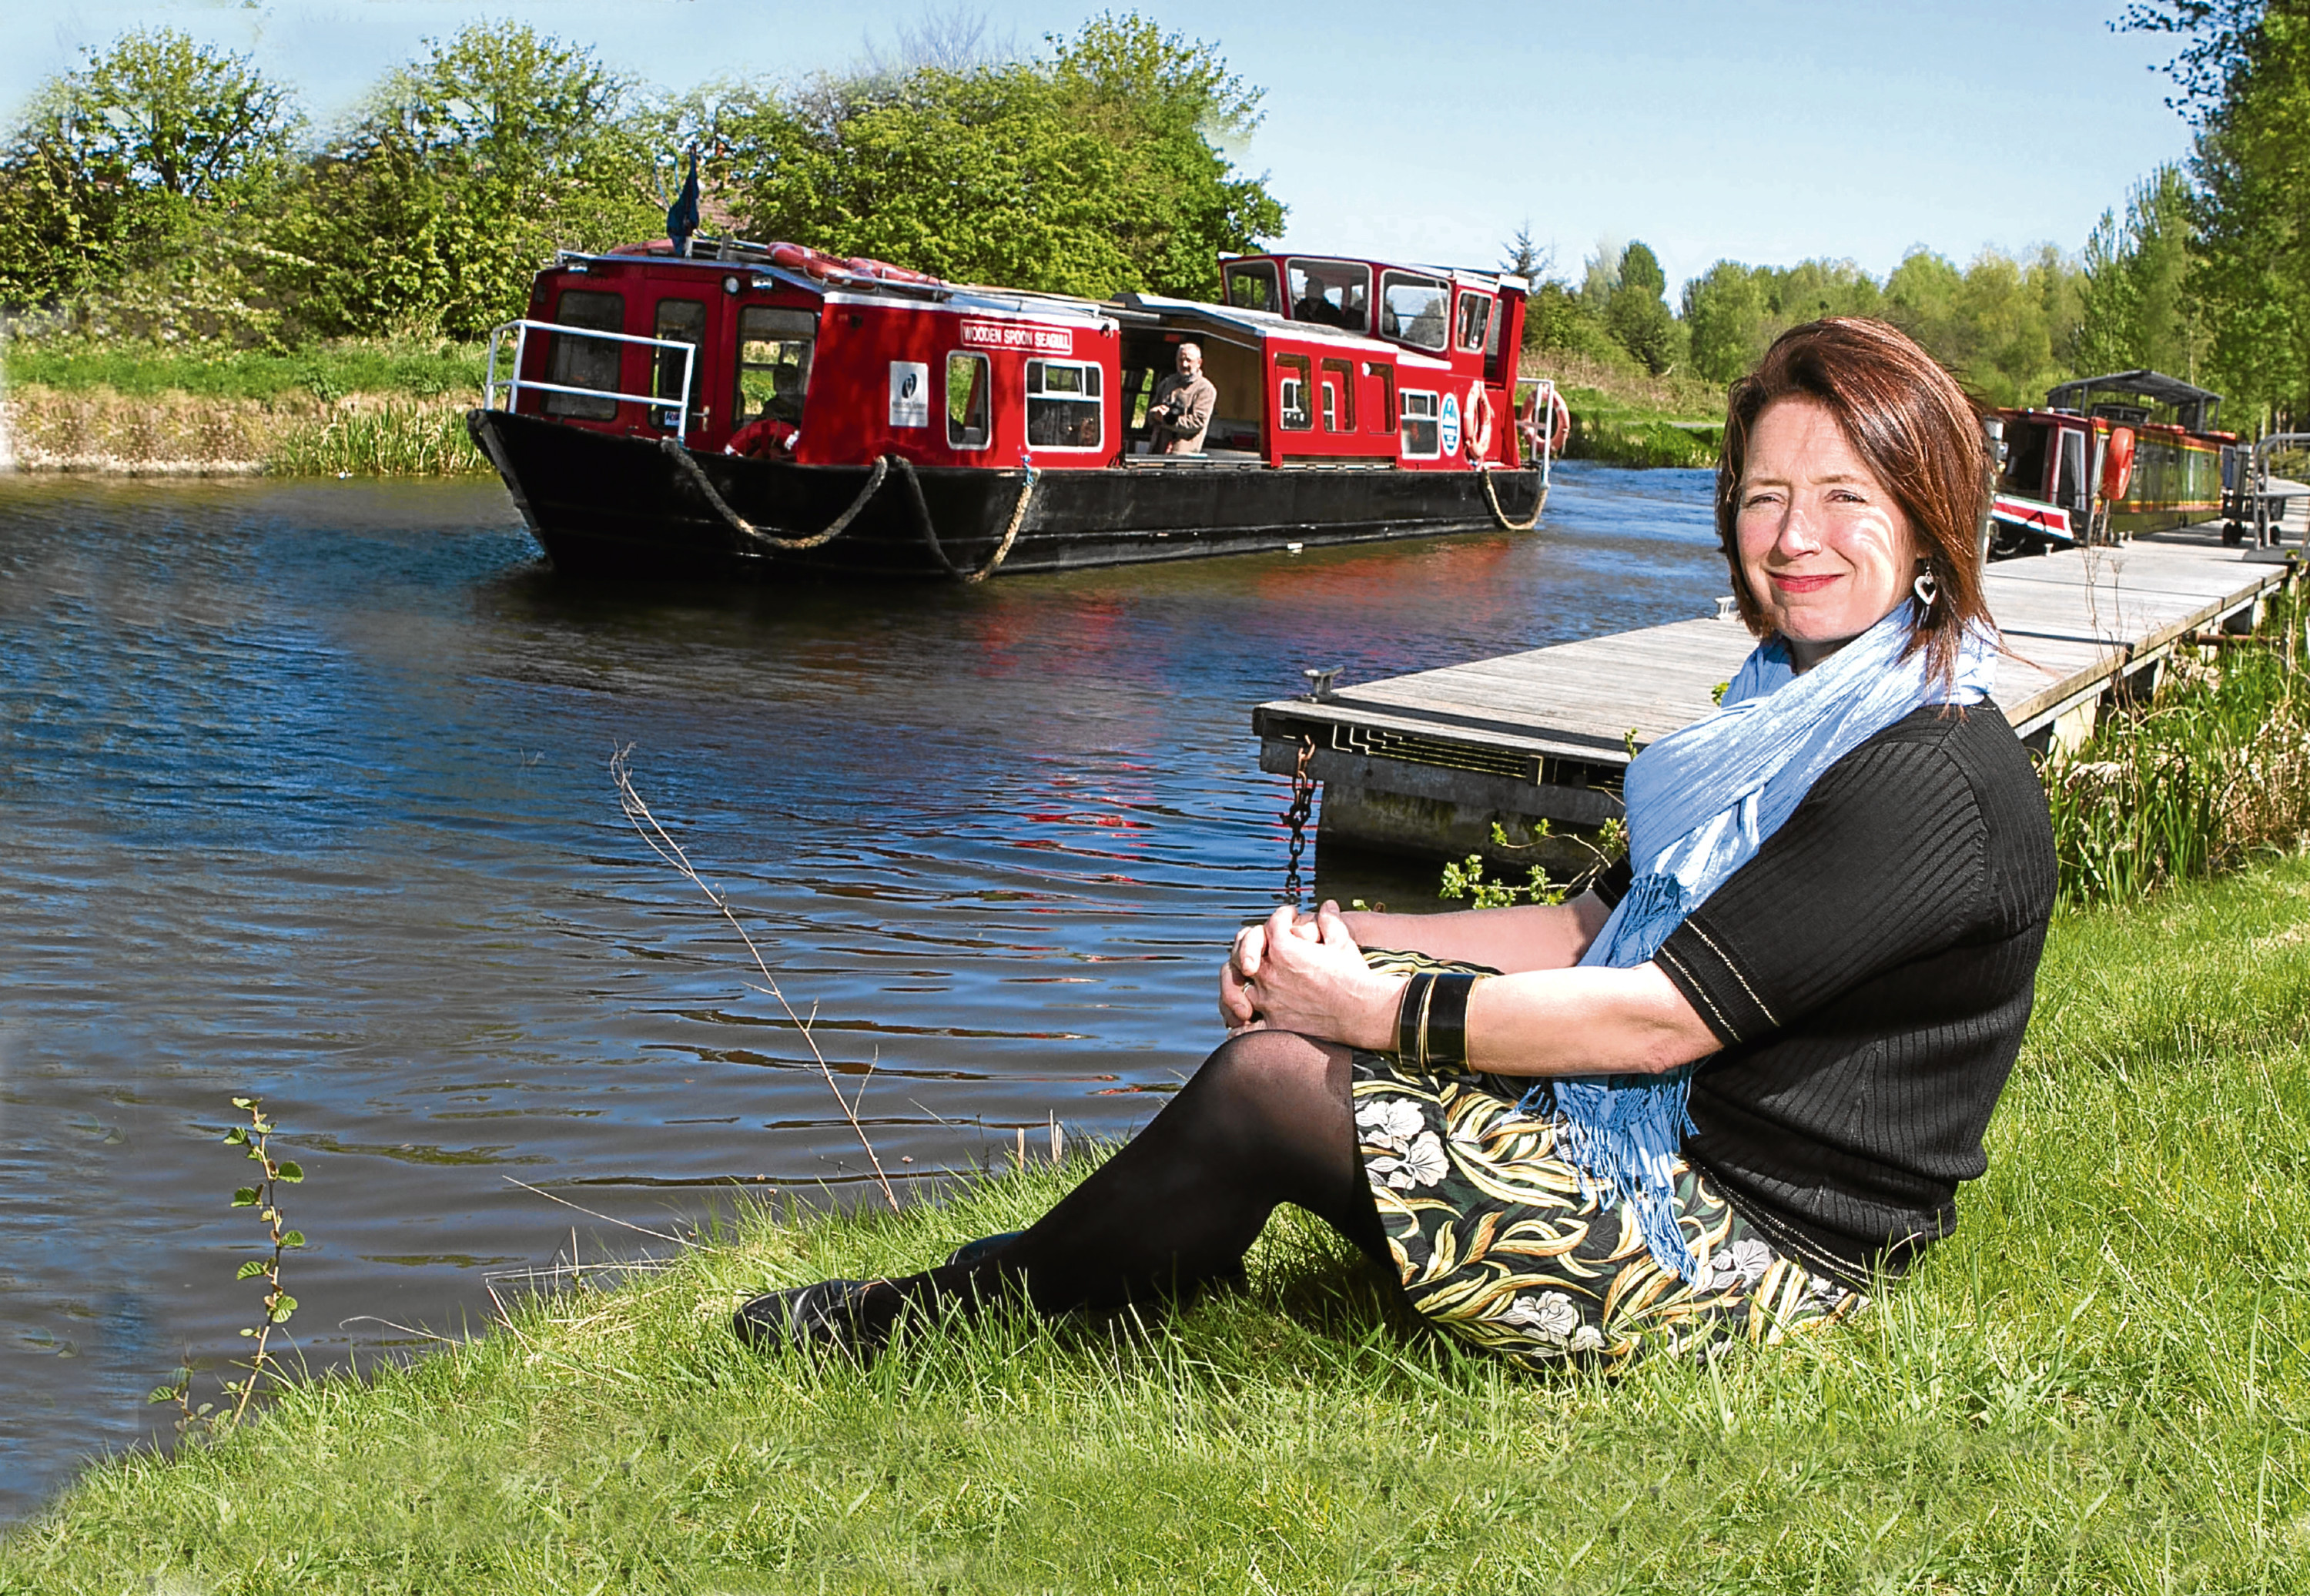 Artist Lesley Banks has been Scottish Canals' resident artist and has a show called Gongoozler at Callender House in Falkirk (Chris Austin / DC Thomson)